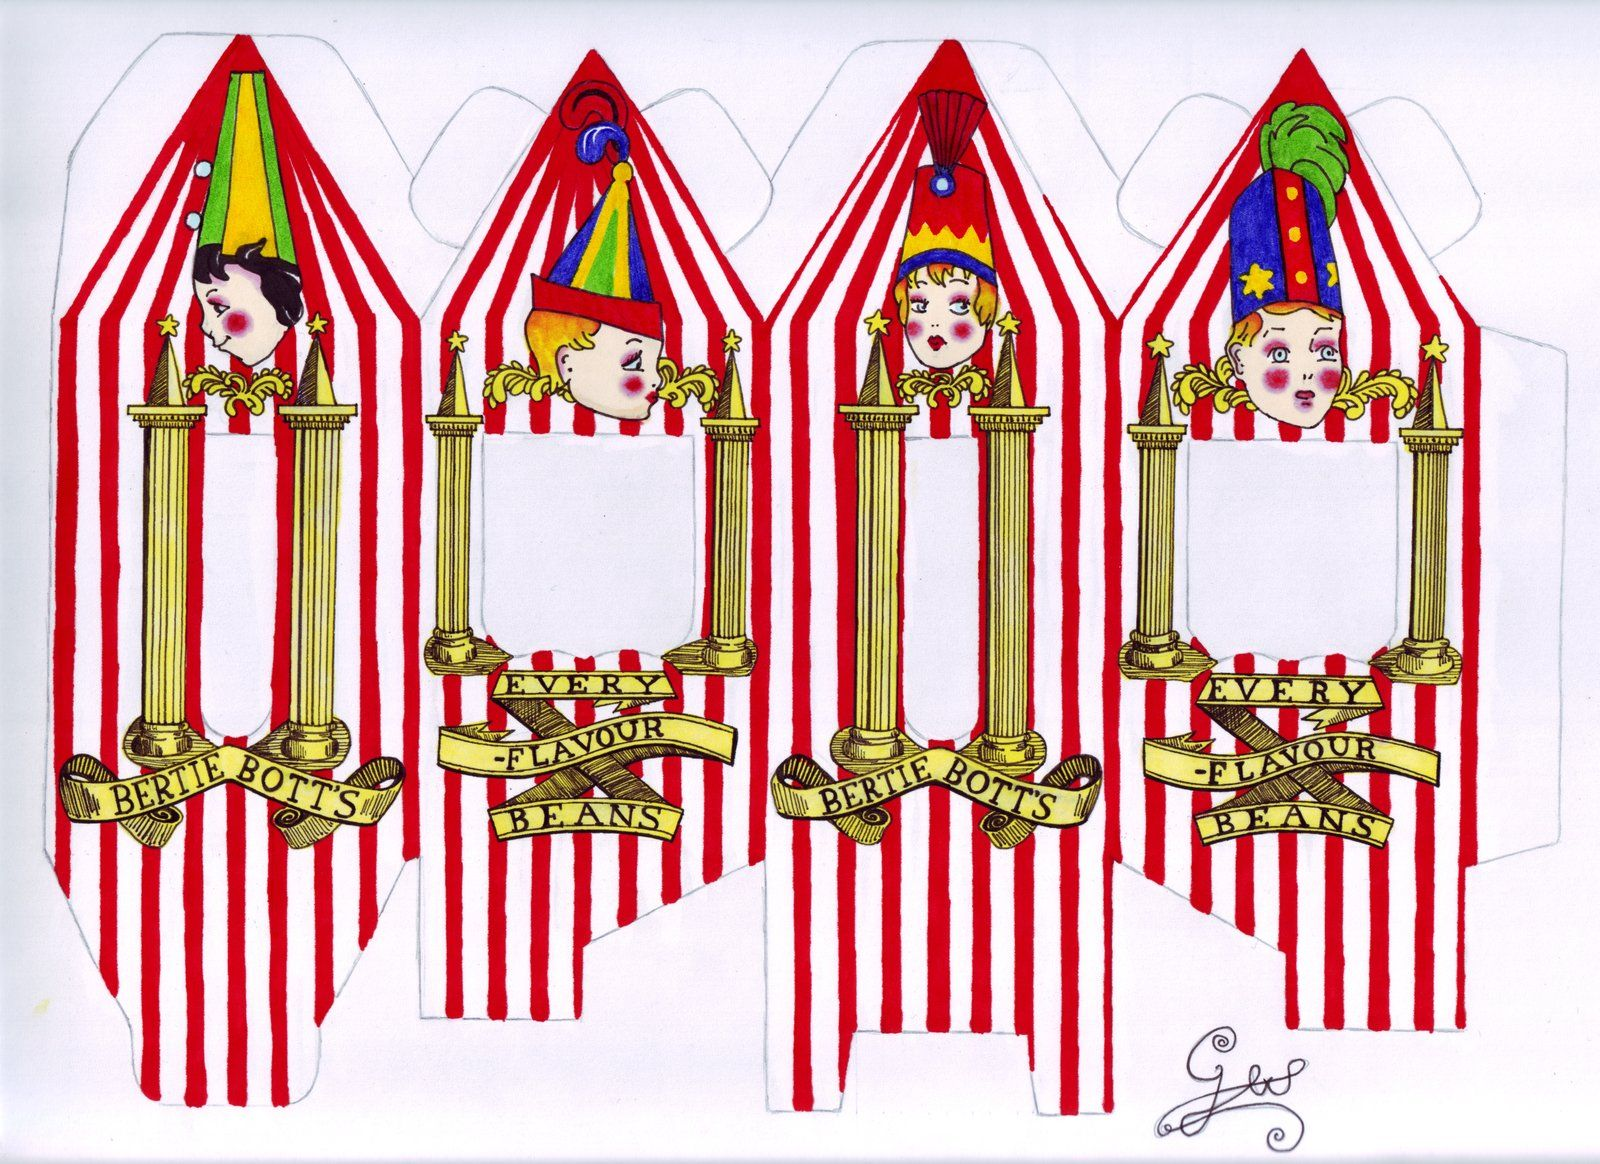 photograph relating to Bertie Botts Every Flavor Beans Printable called Bertie Botts Beans colored as a result of GwendolynWolters.deviantart